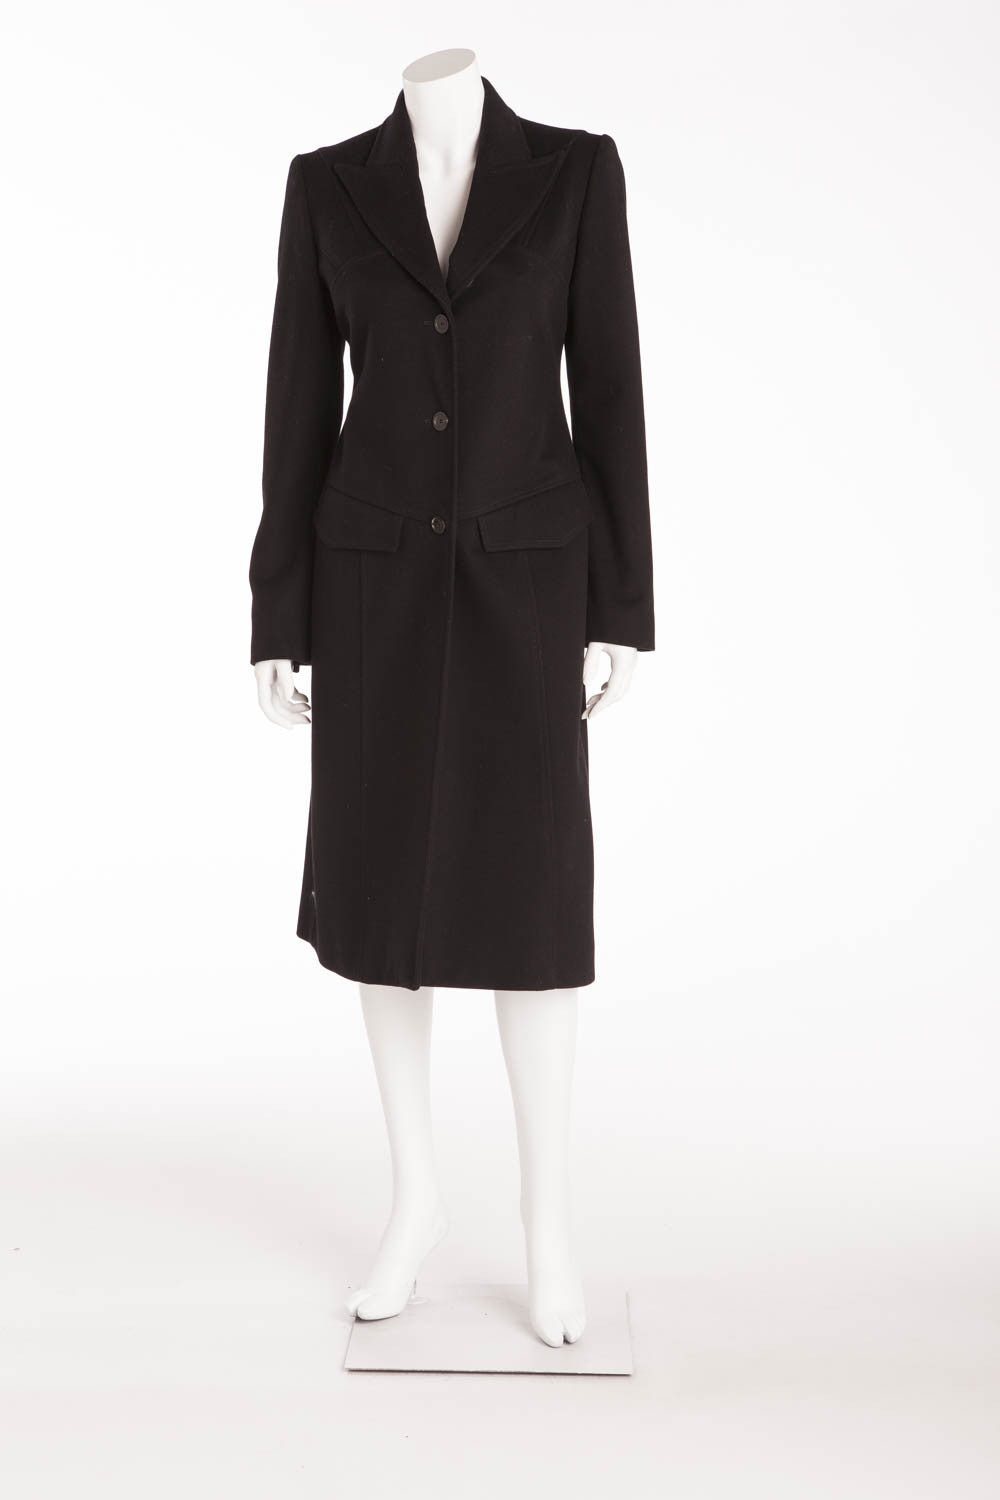 Gucci - Black Long Sleeve Button Up Coat  - IT 38